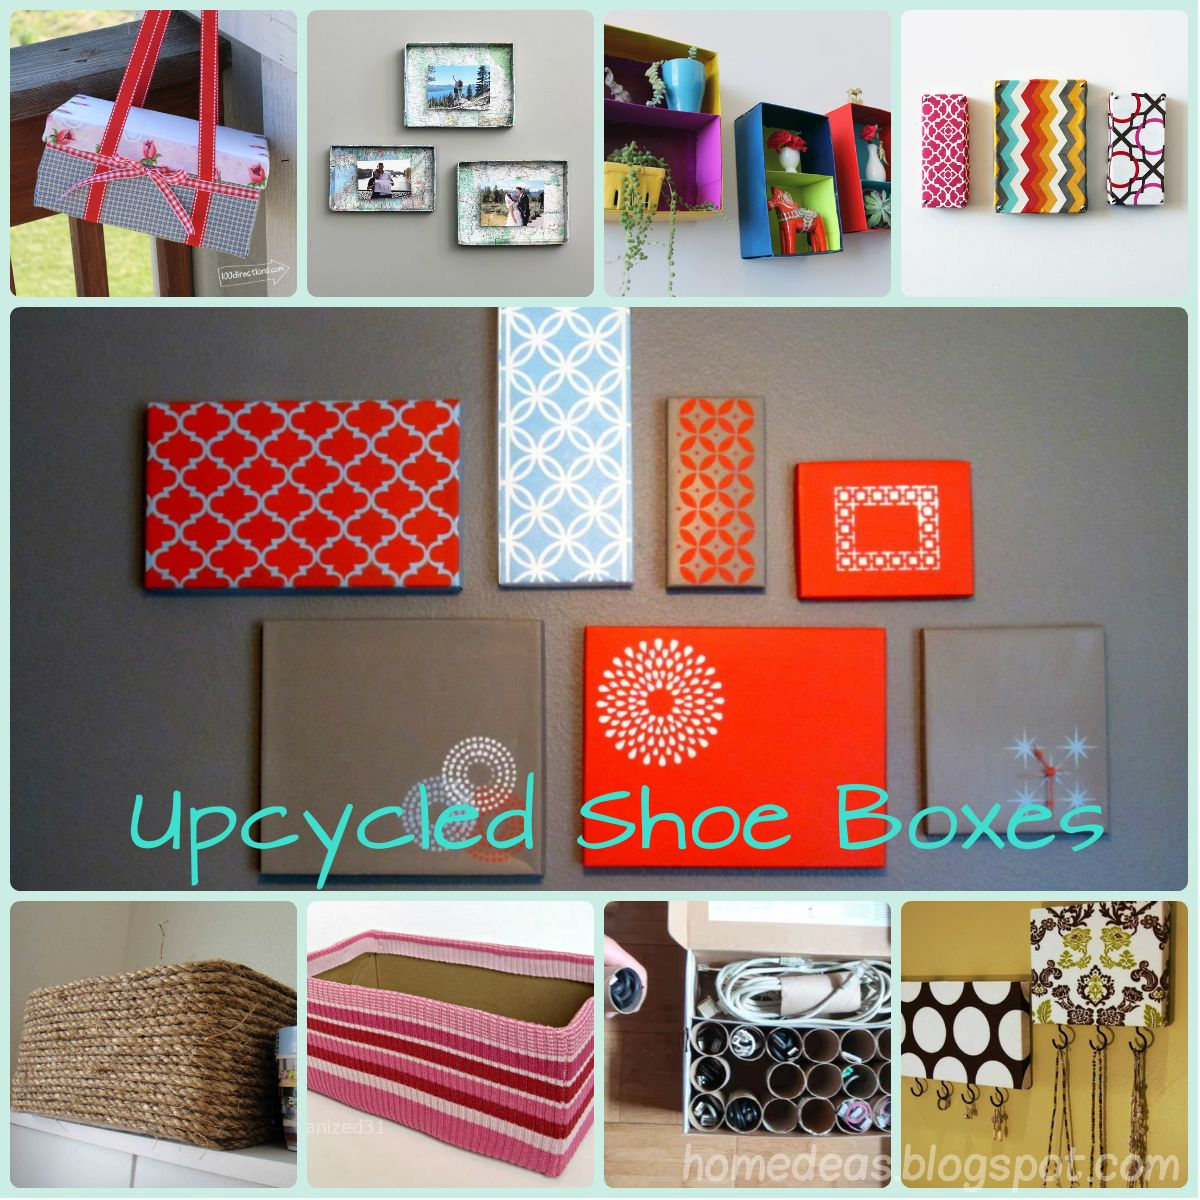 30 Shoe Box Craft Ideas: Upcycled Shoe Boxes I Love The Painted Tops For Wall Decor